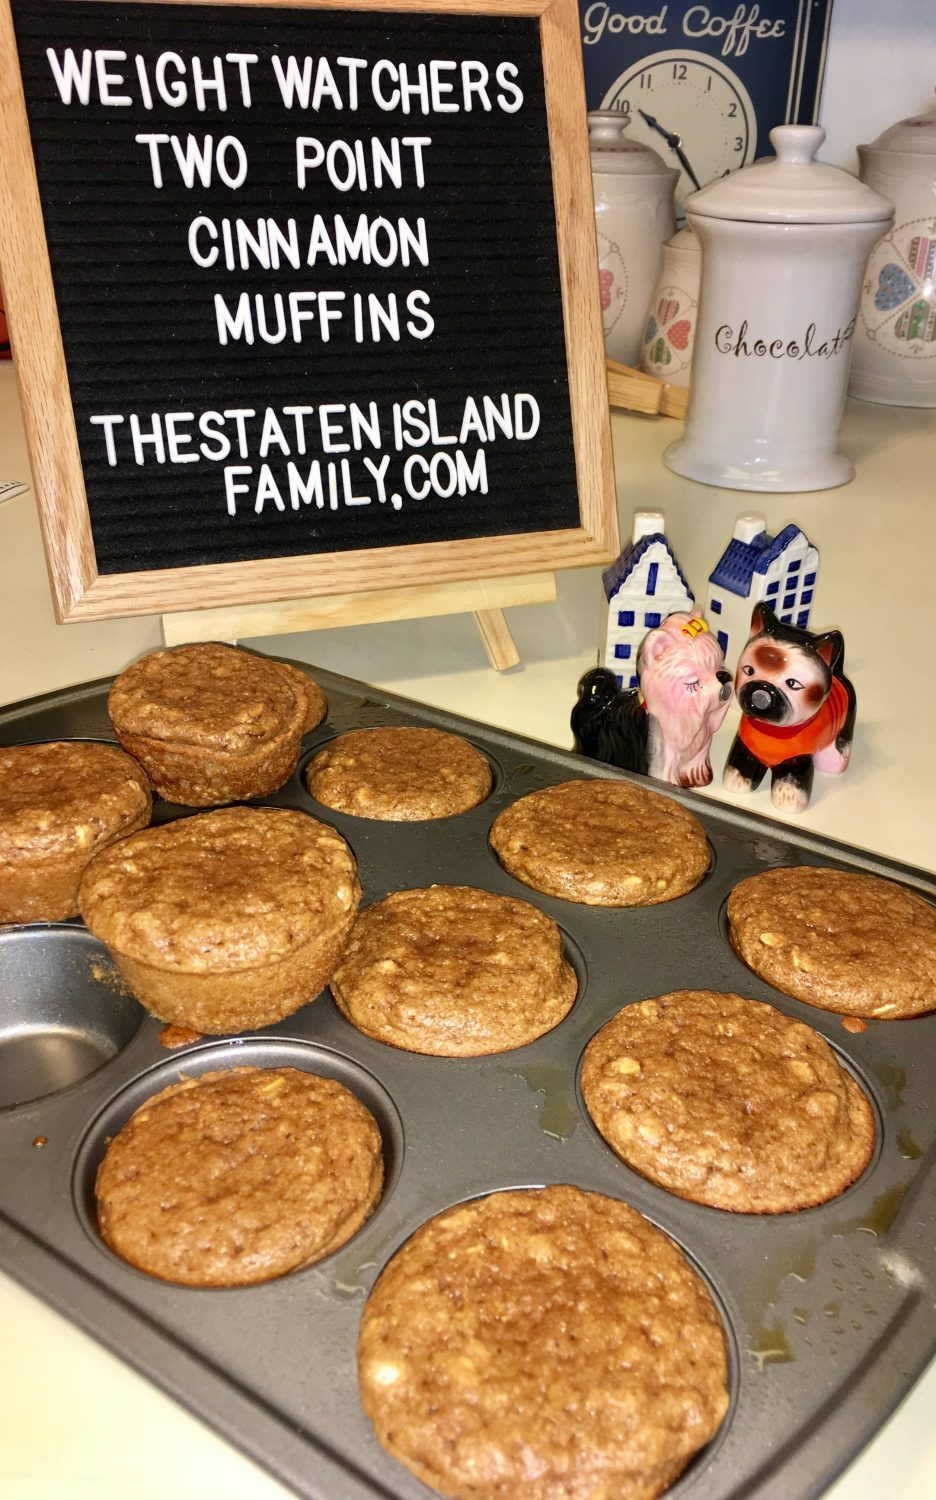 cinnamon muffins cooking